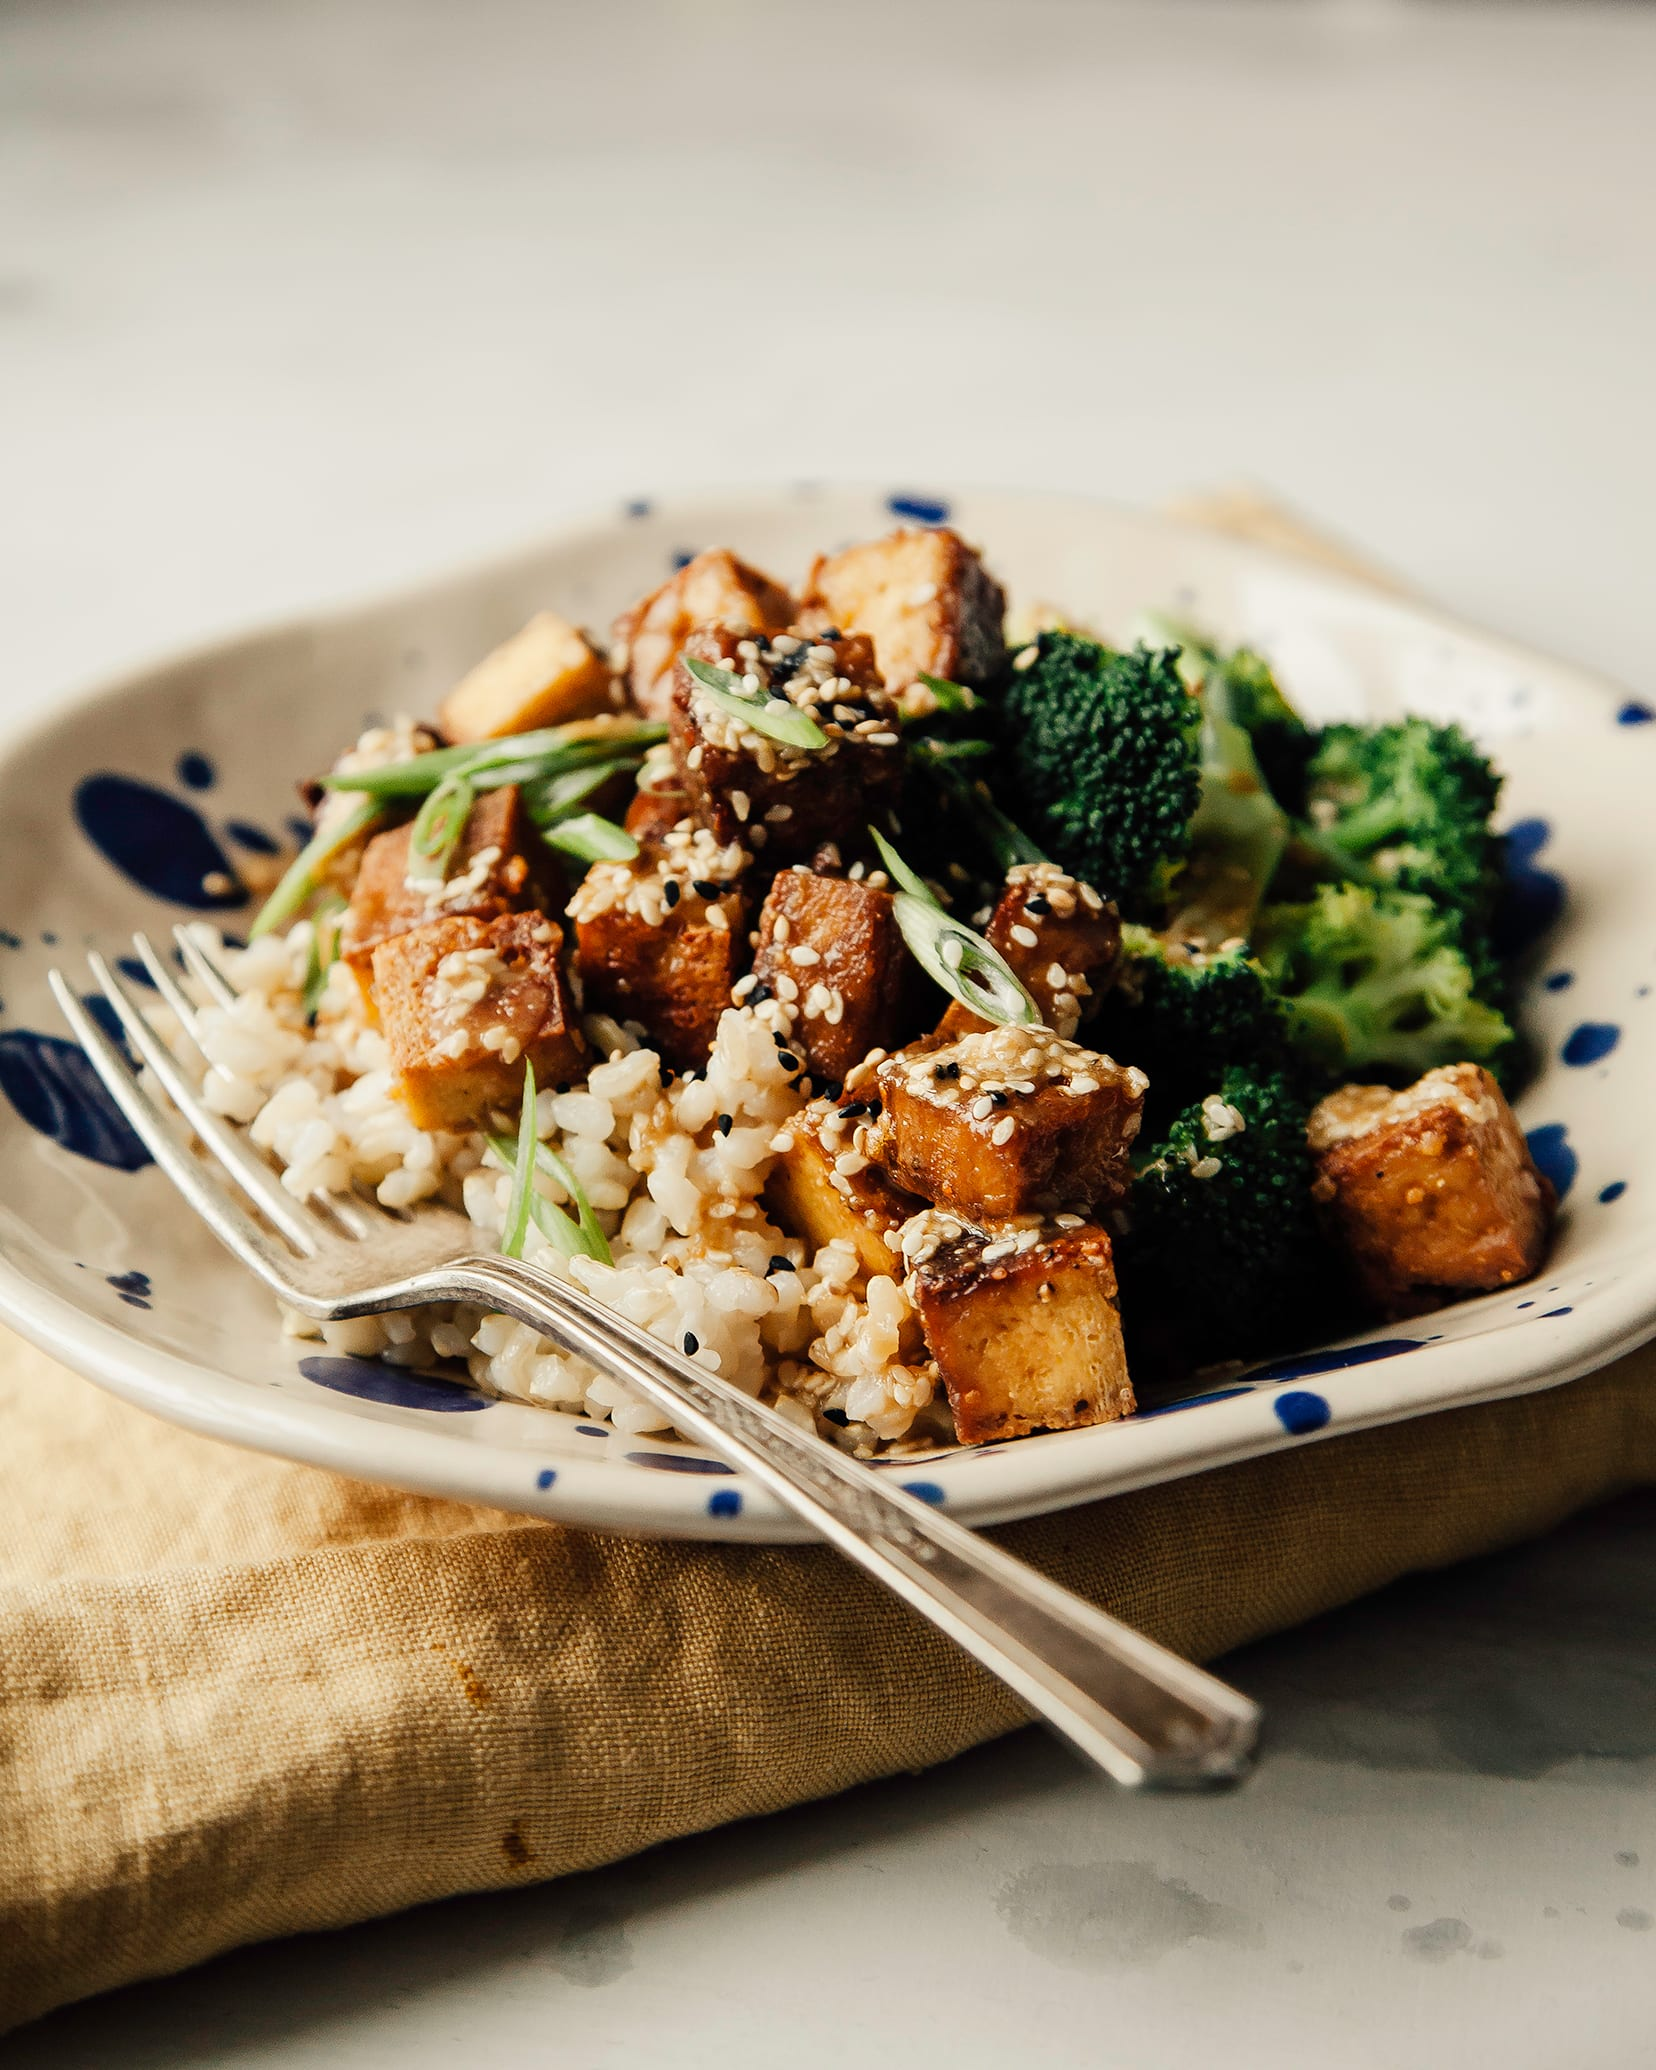 Side angle shot of crispy sesame garlic tofu in a bowl with some brown rice and steamed broccoli